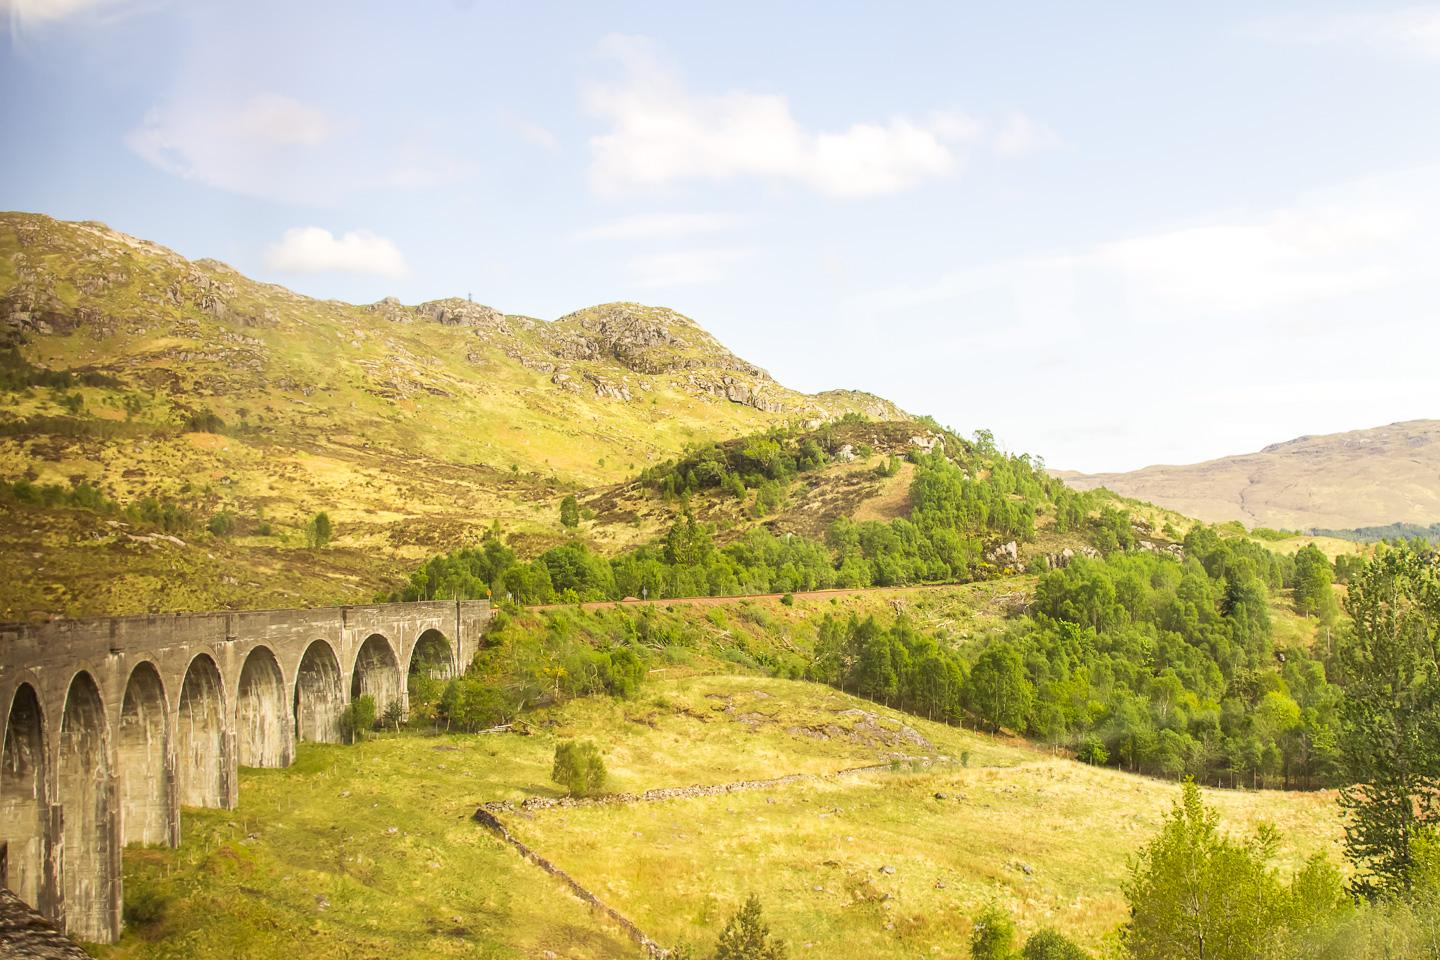 glenfinnan viaduct harry potter bridge